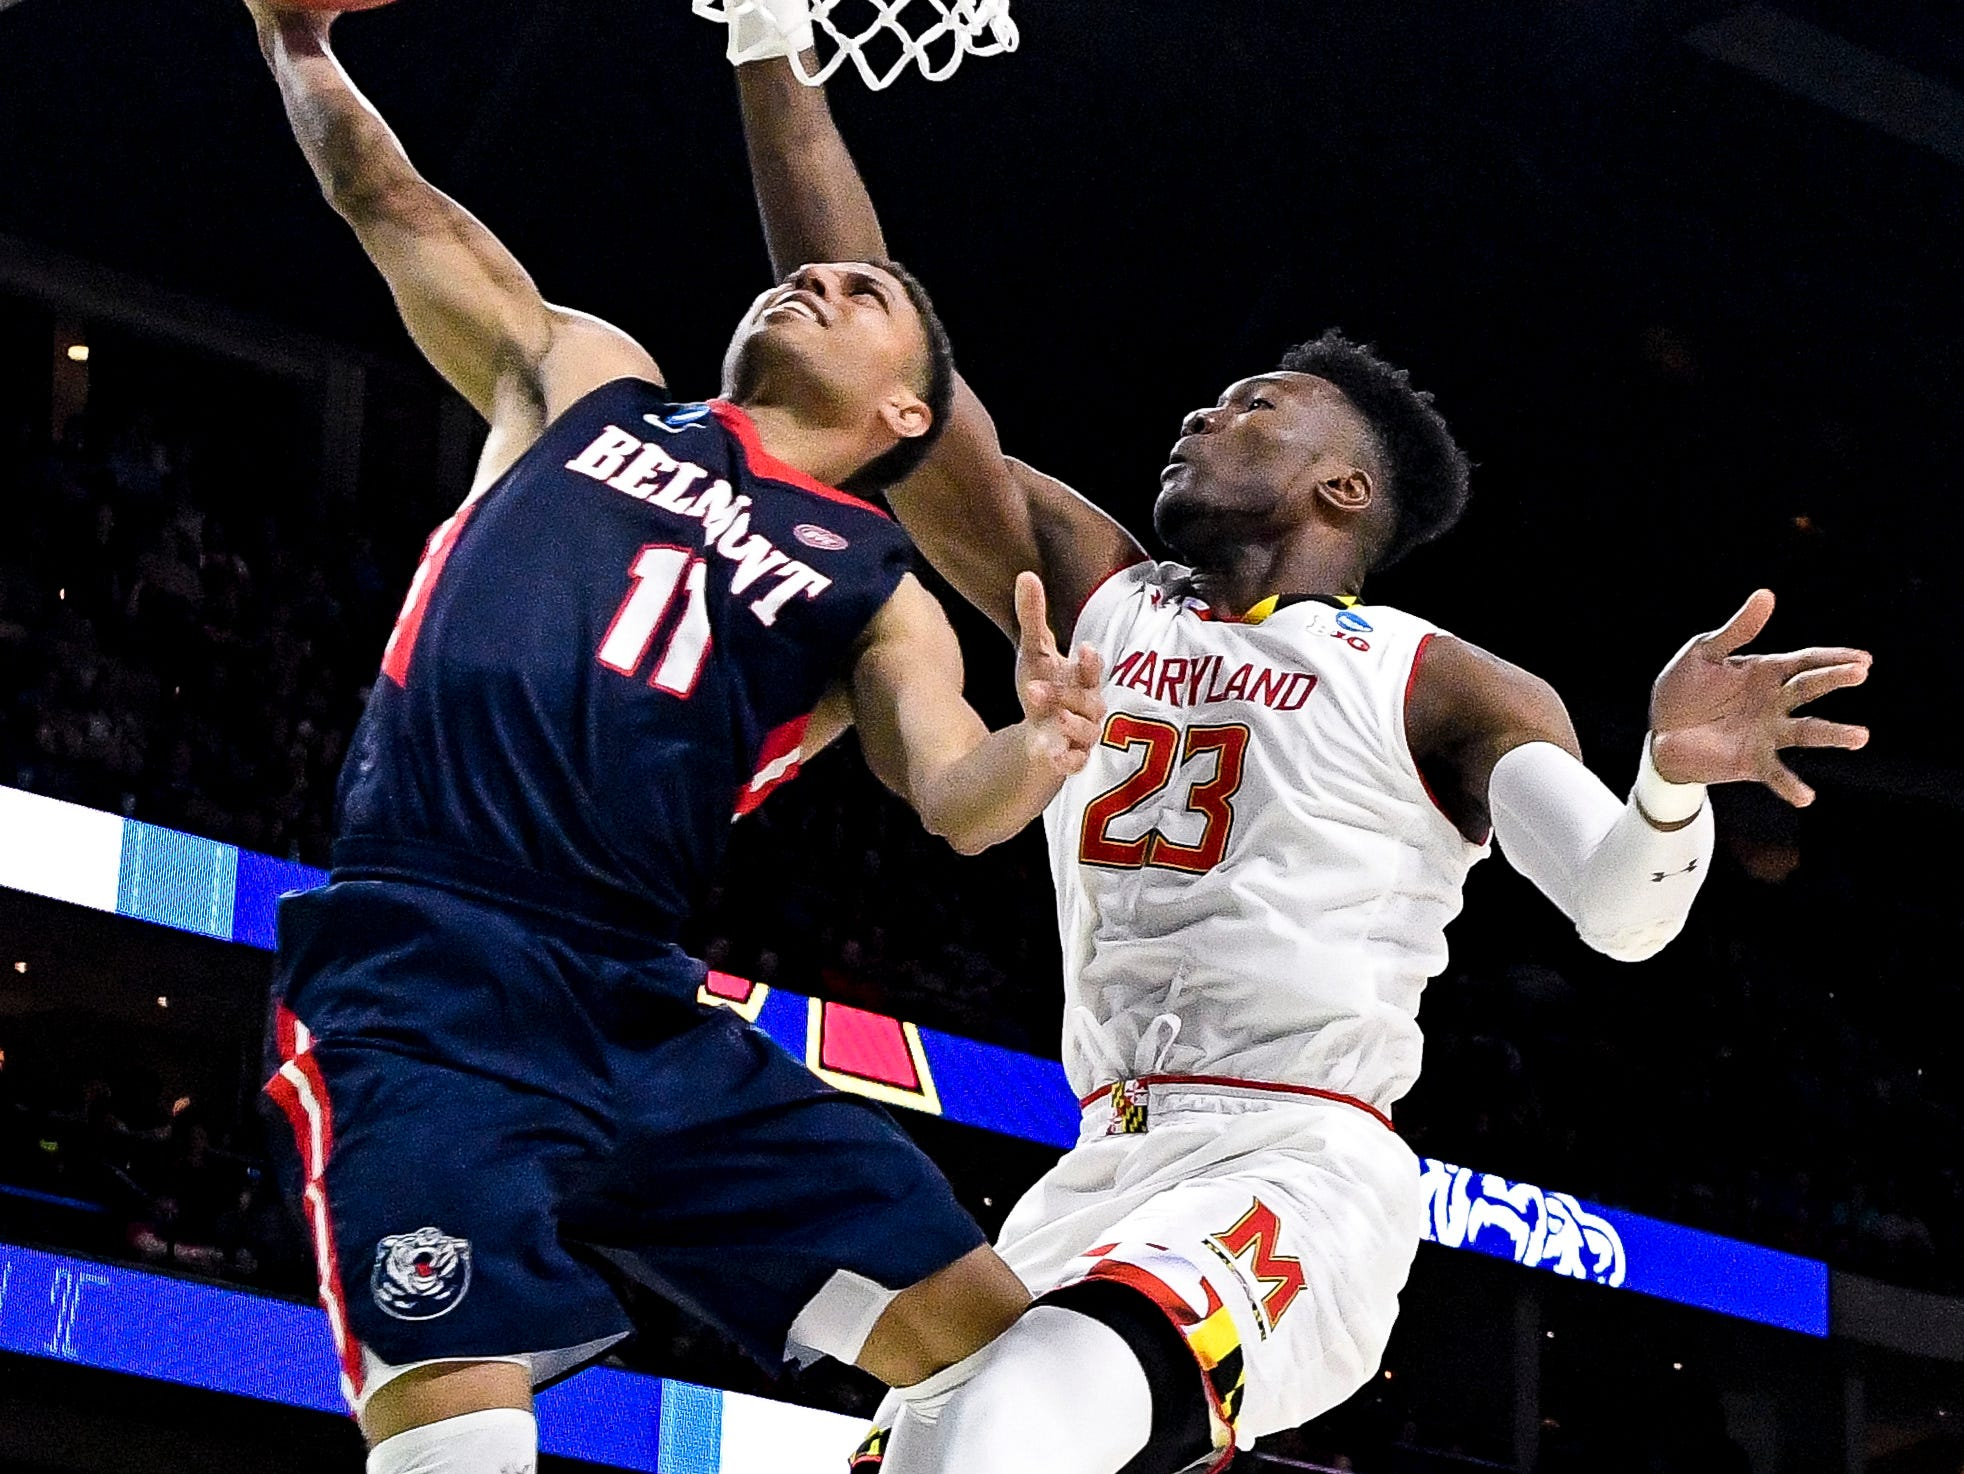 Belmont guard Kevin McClain (11) shoots against Maryland forward Bruno Fernando (23) during the second half of the first-round NCAA college basketball tournament game at VyStar Veterans Memorial Arena in Jacksonville, Fla., Thursday, March 21, 2019.